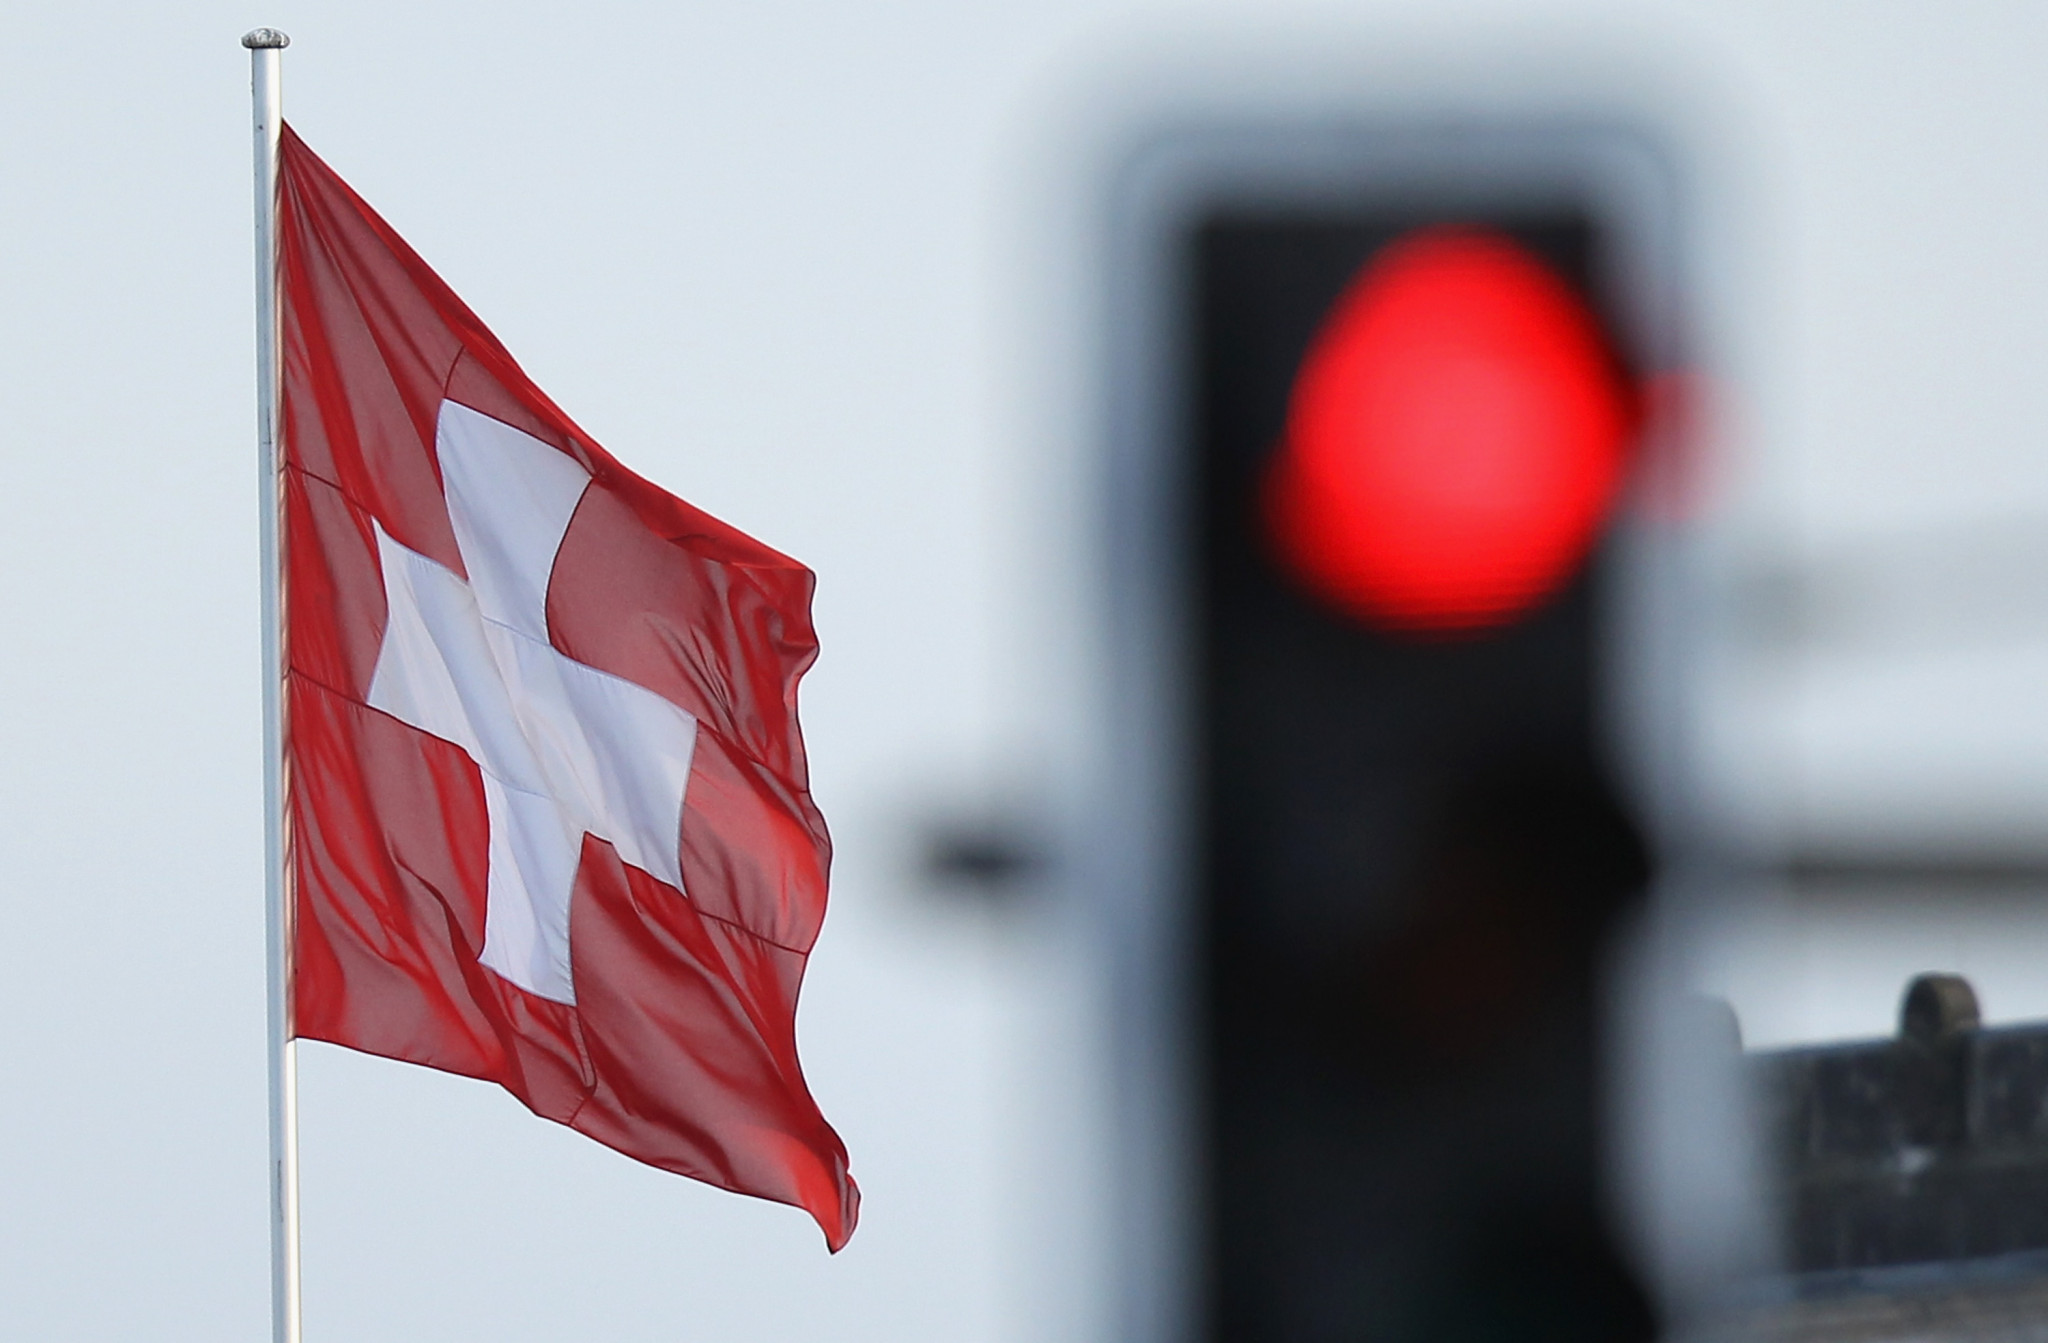 Swiss Olympic has joined calls for this summer's Olympics to be postponed ©Getty Images